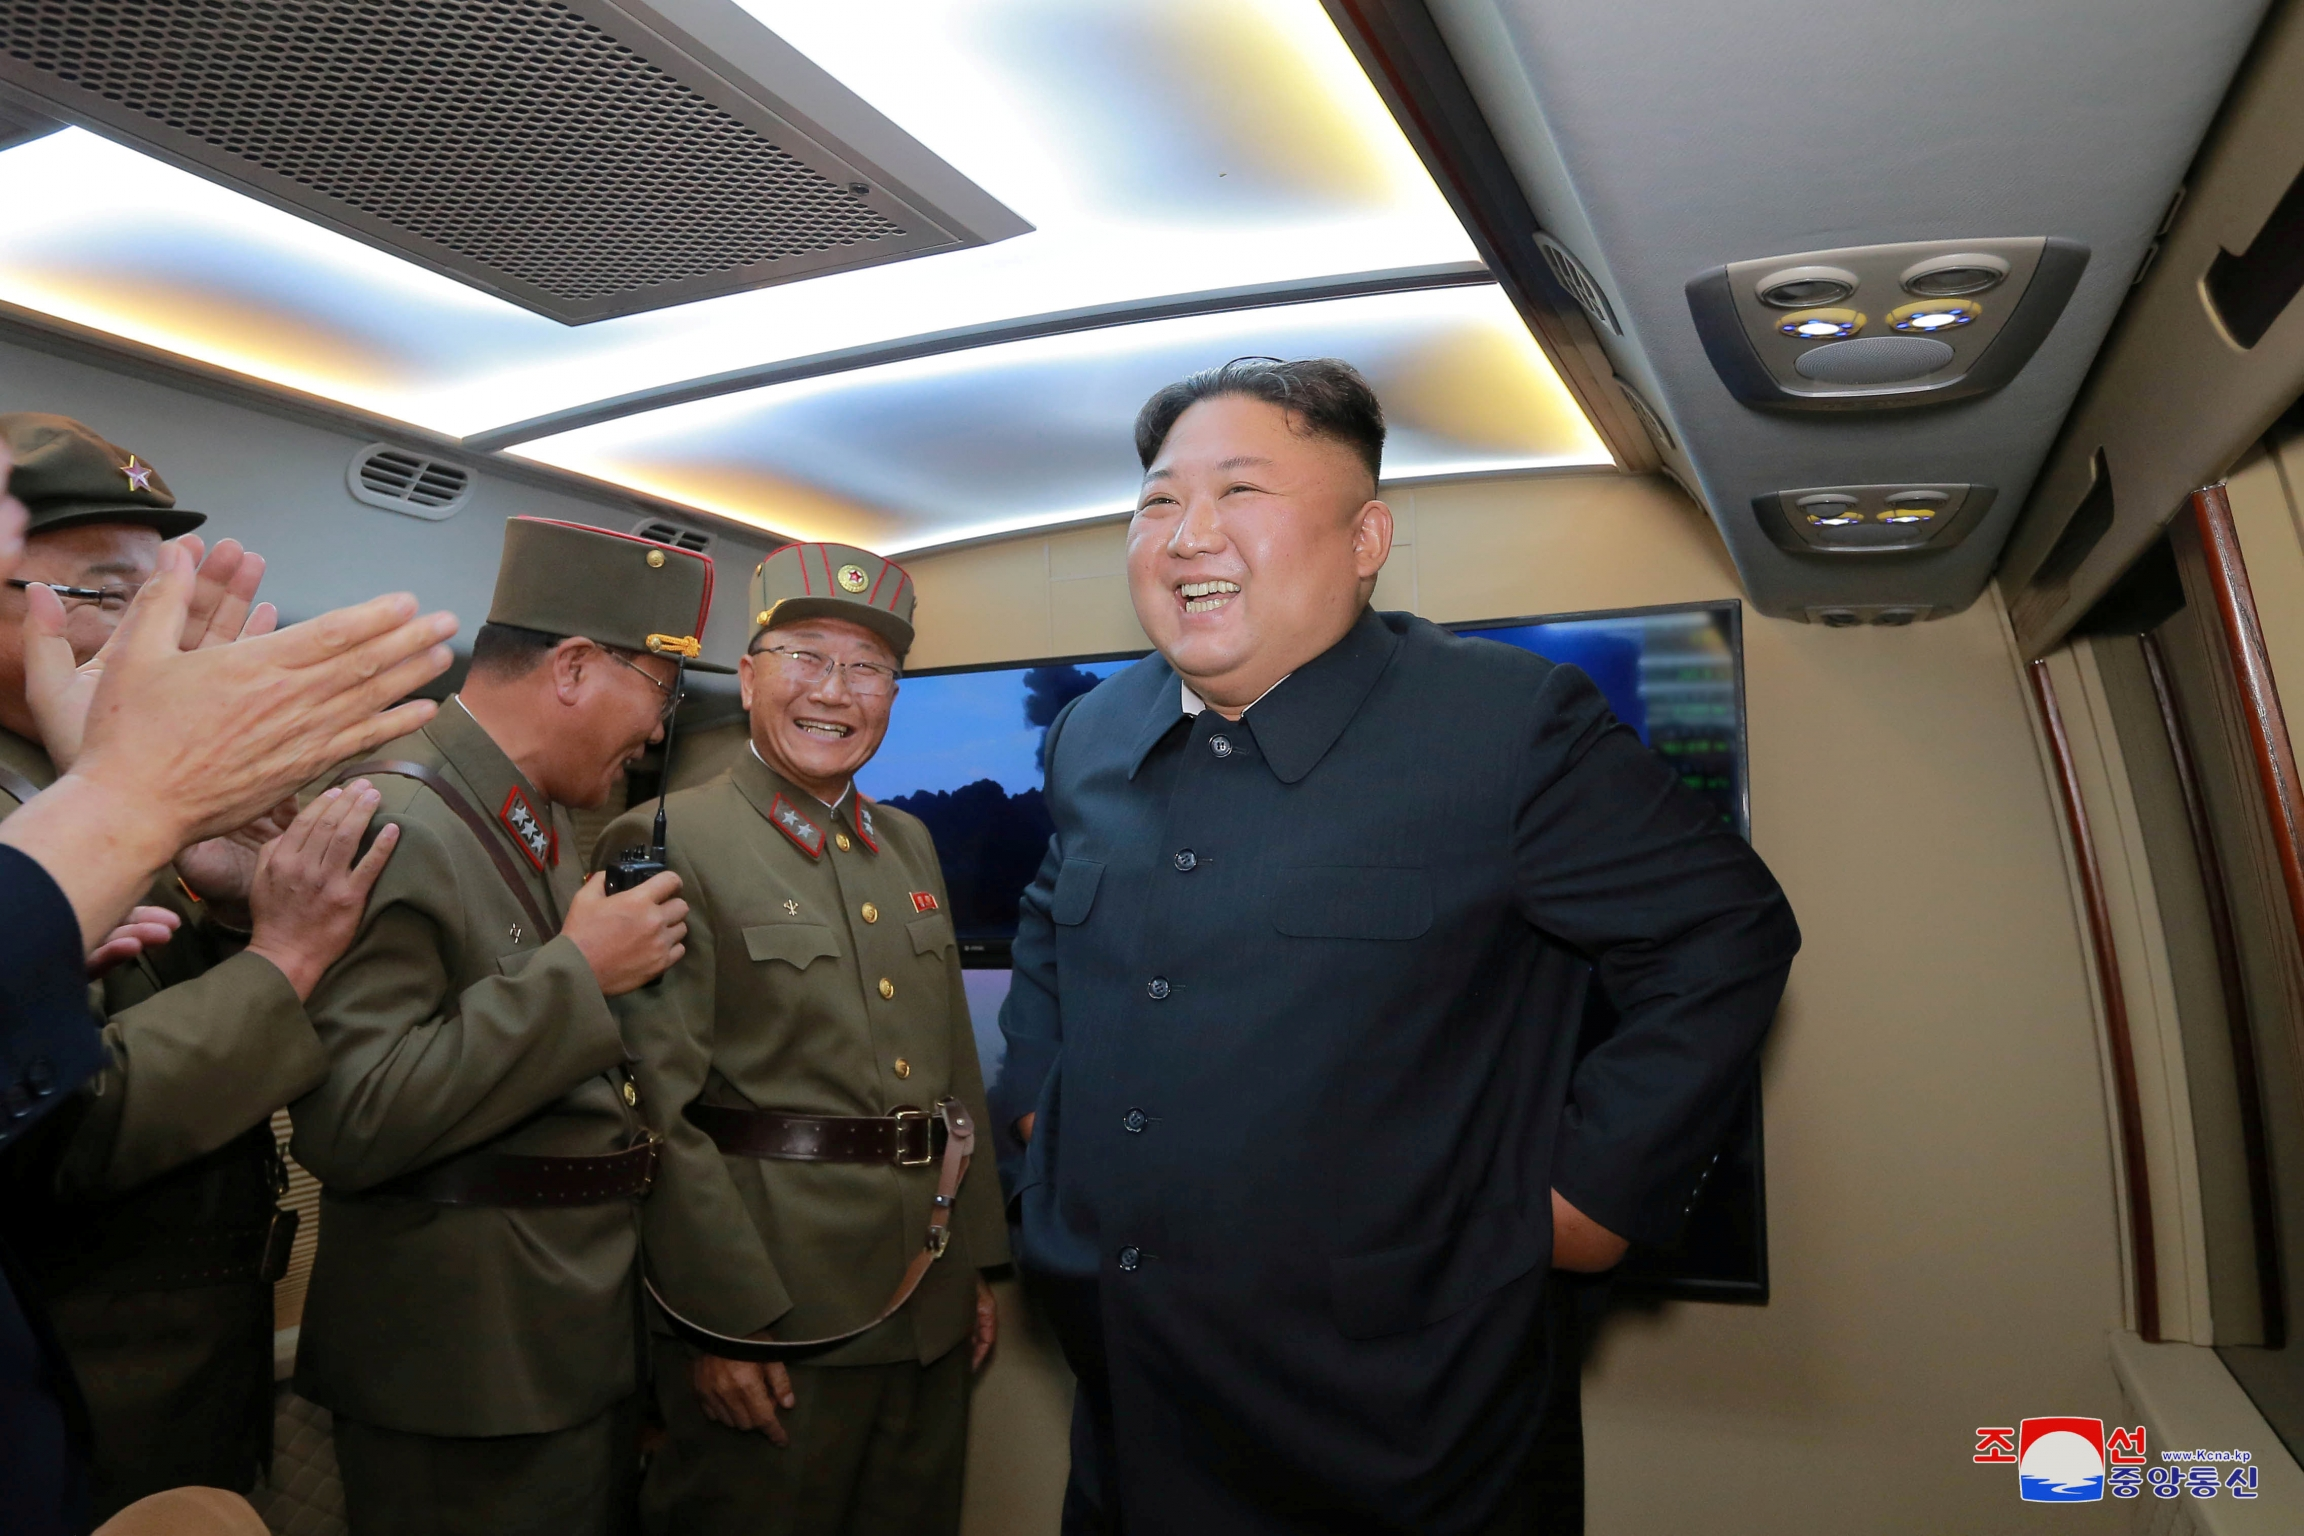 Kim Jong-un smiles in gray suit as he talks with men in green military uniforms